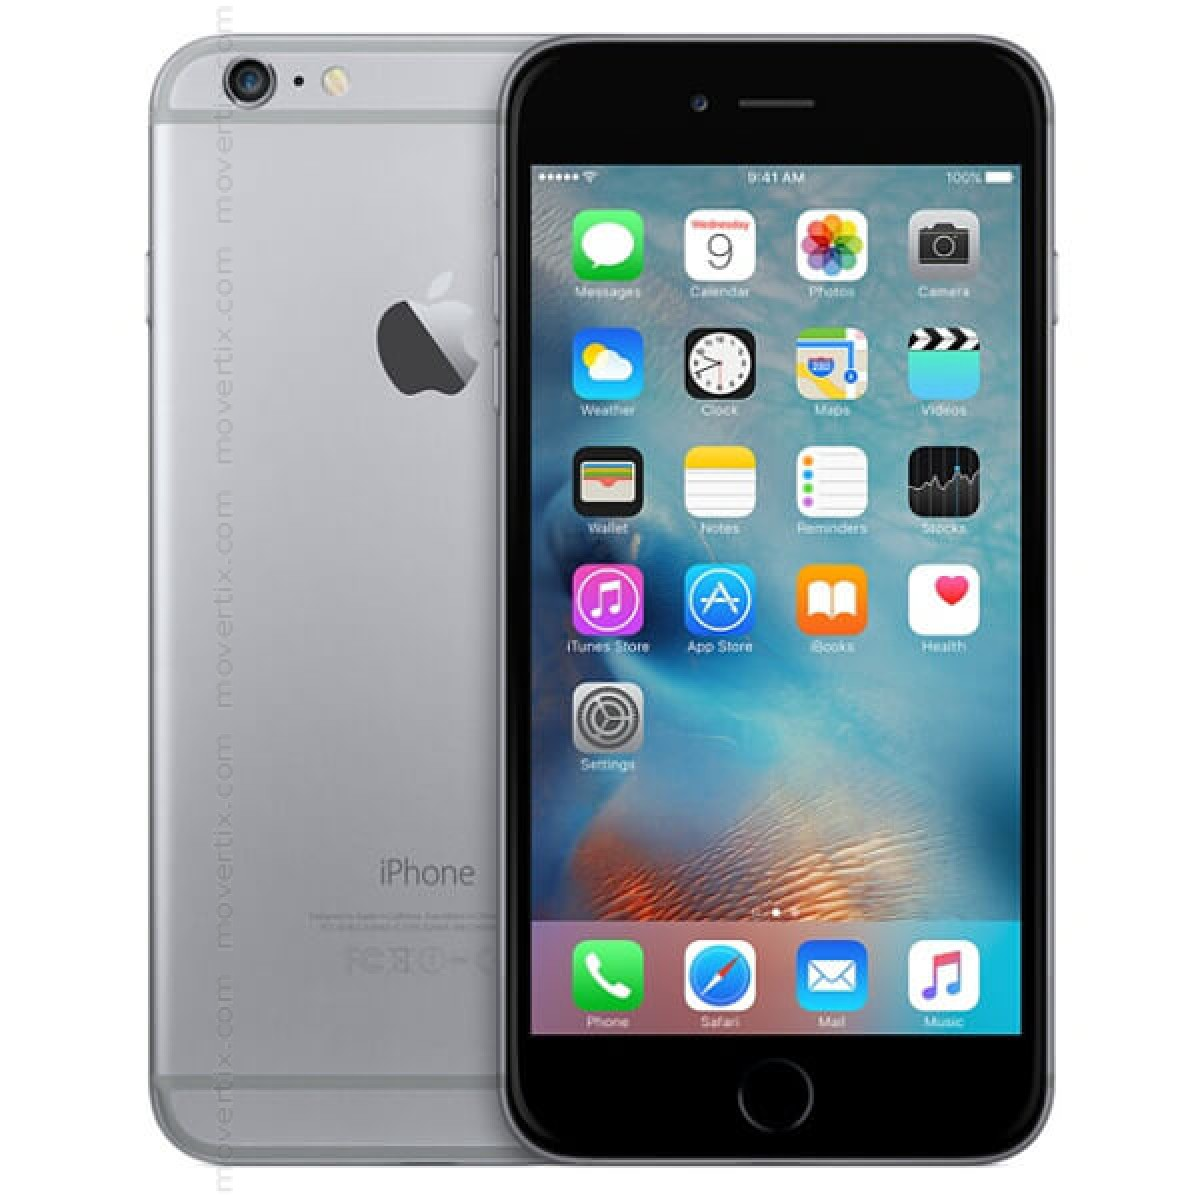 6b3e55e7a30 Apple iPhone 6S Plus en Gris Espacial de 128GB (0888462570350 ...